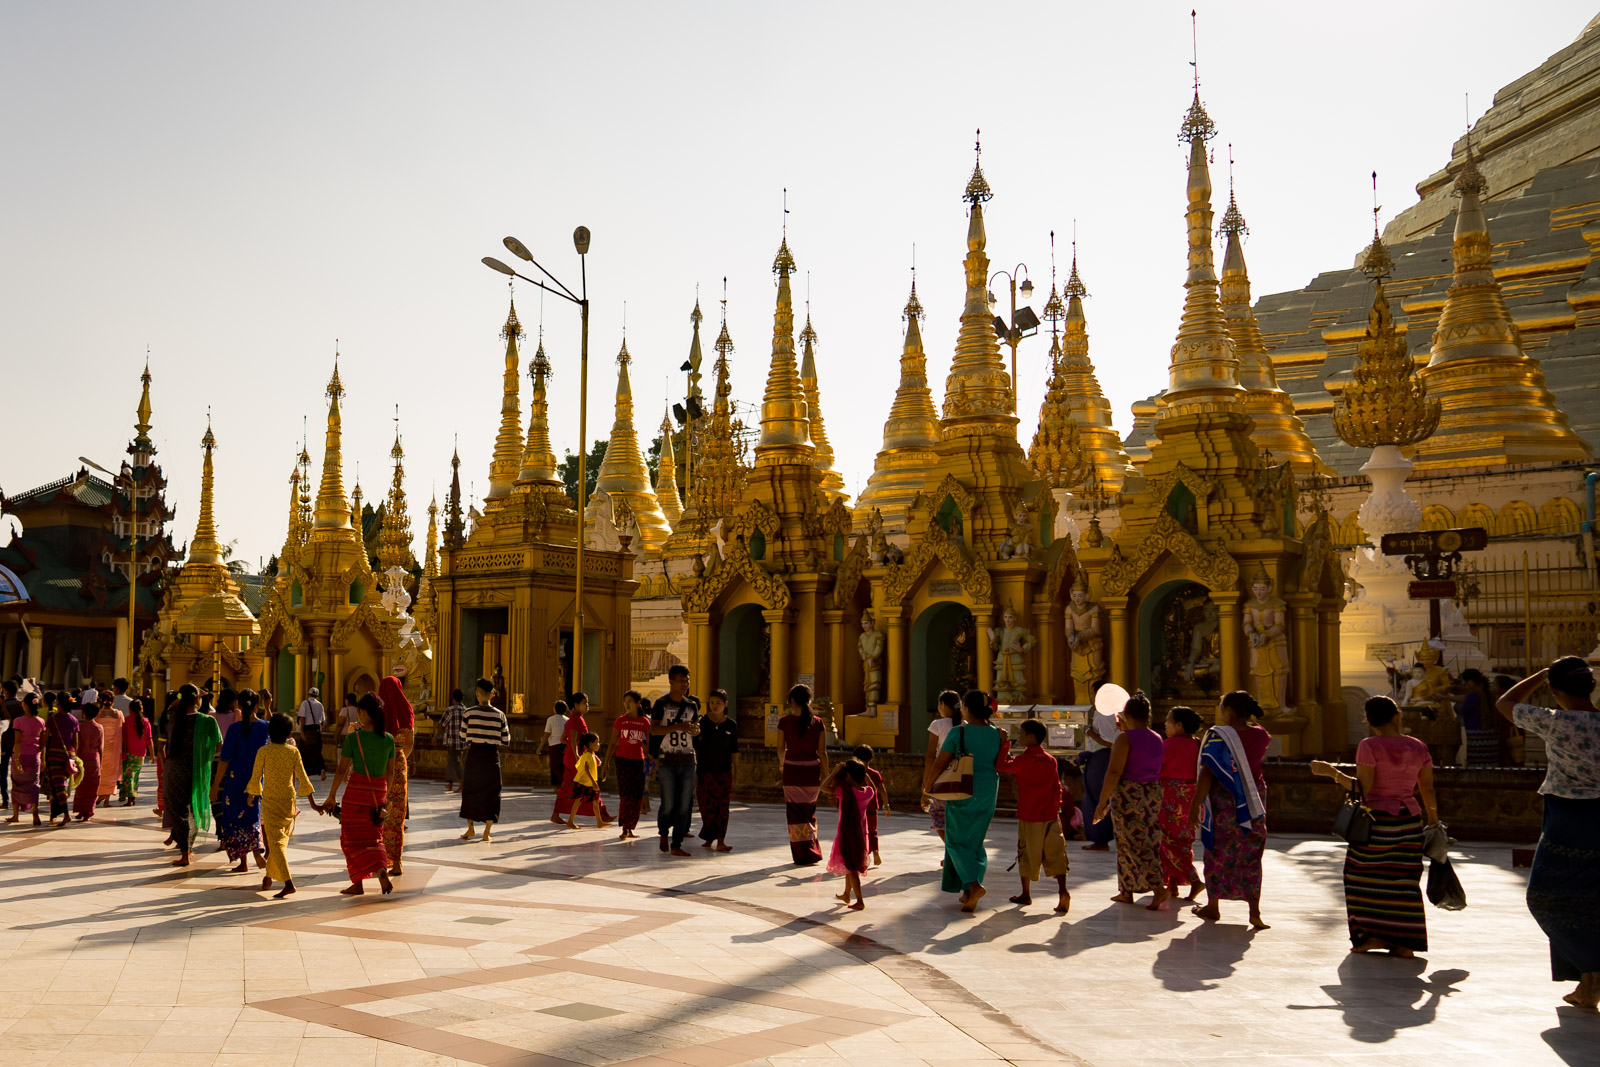 We've fallen in love with the city of Yangon!